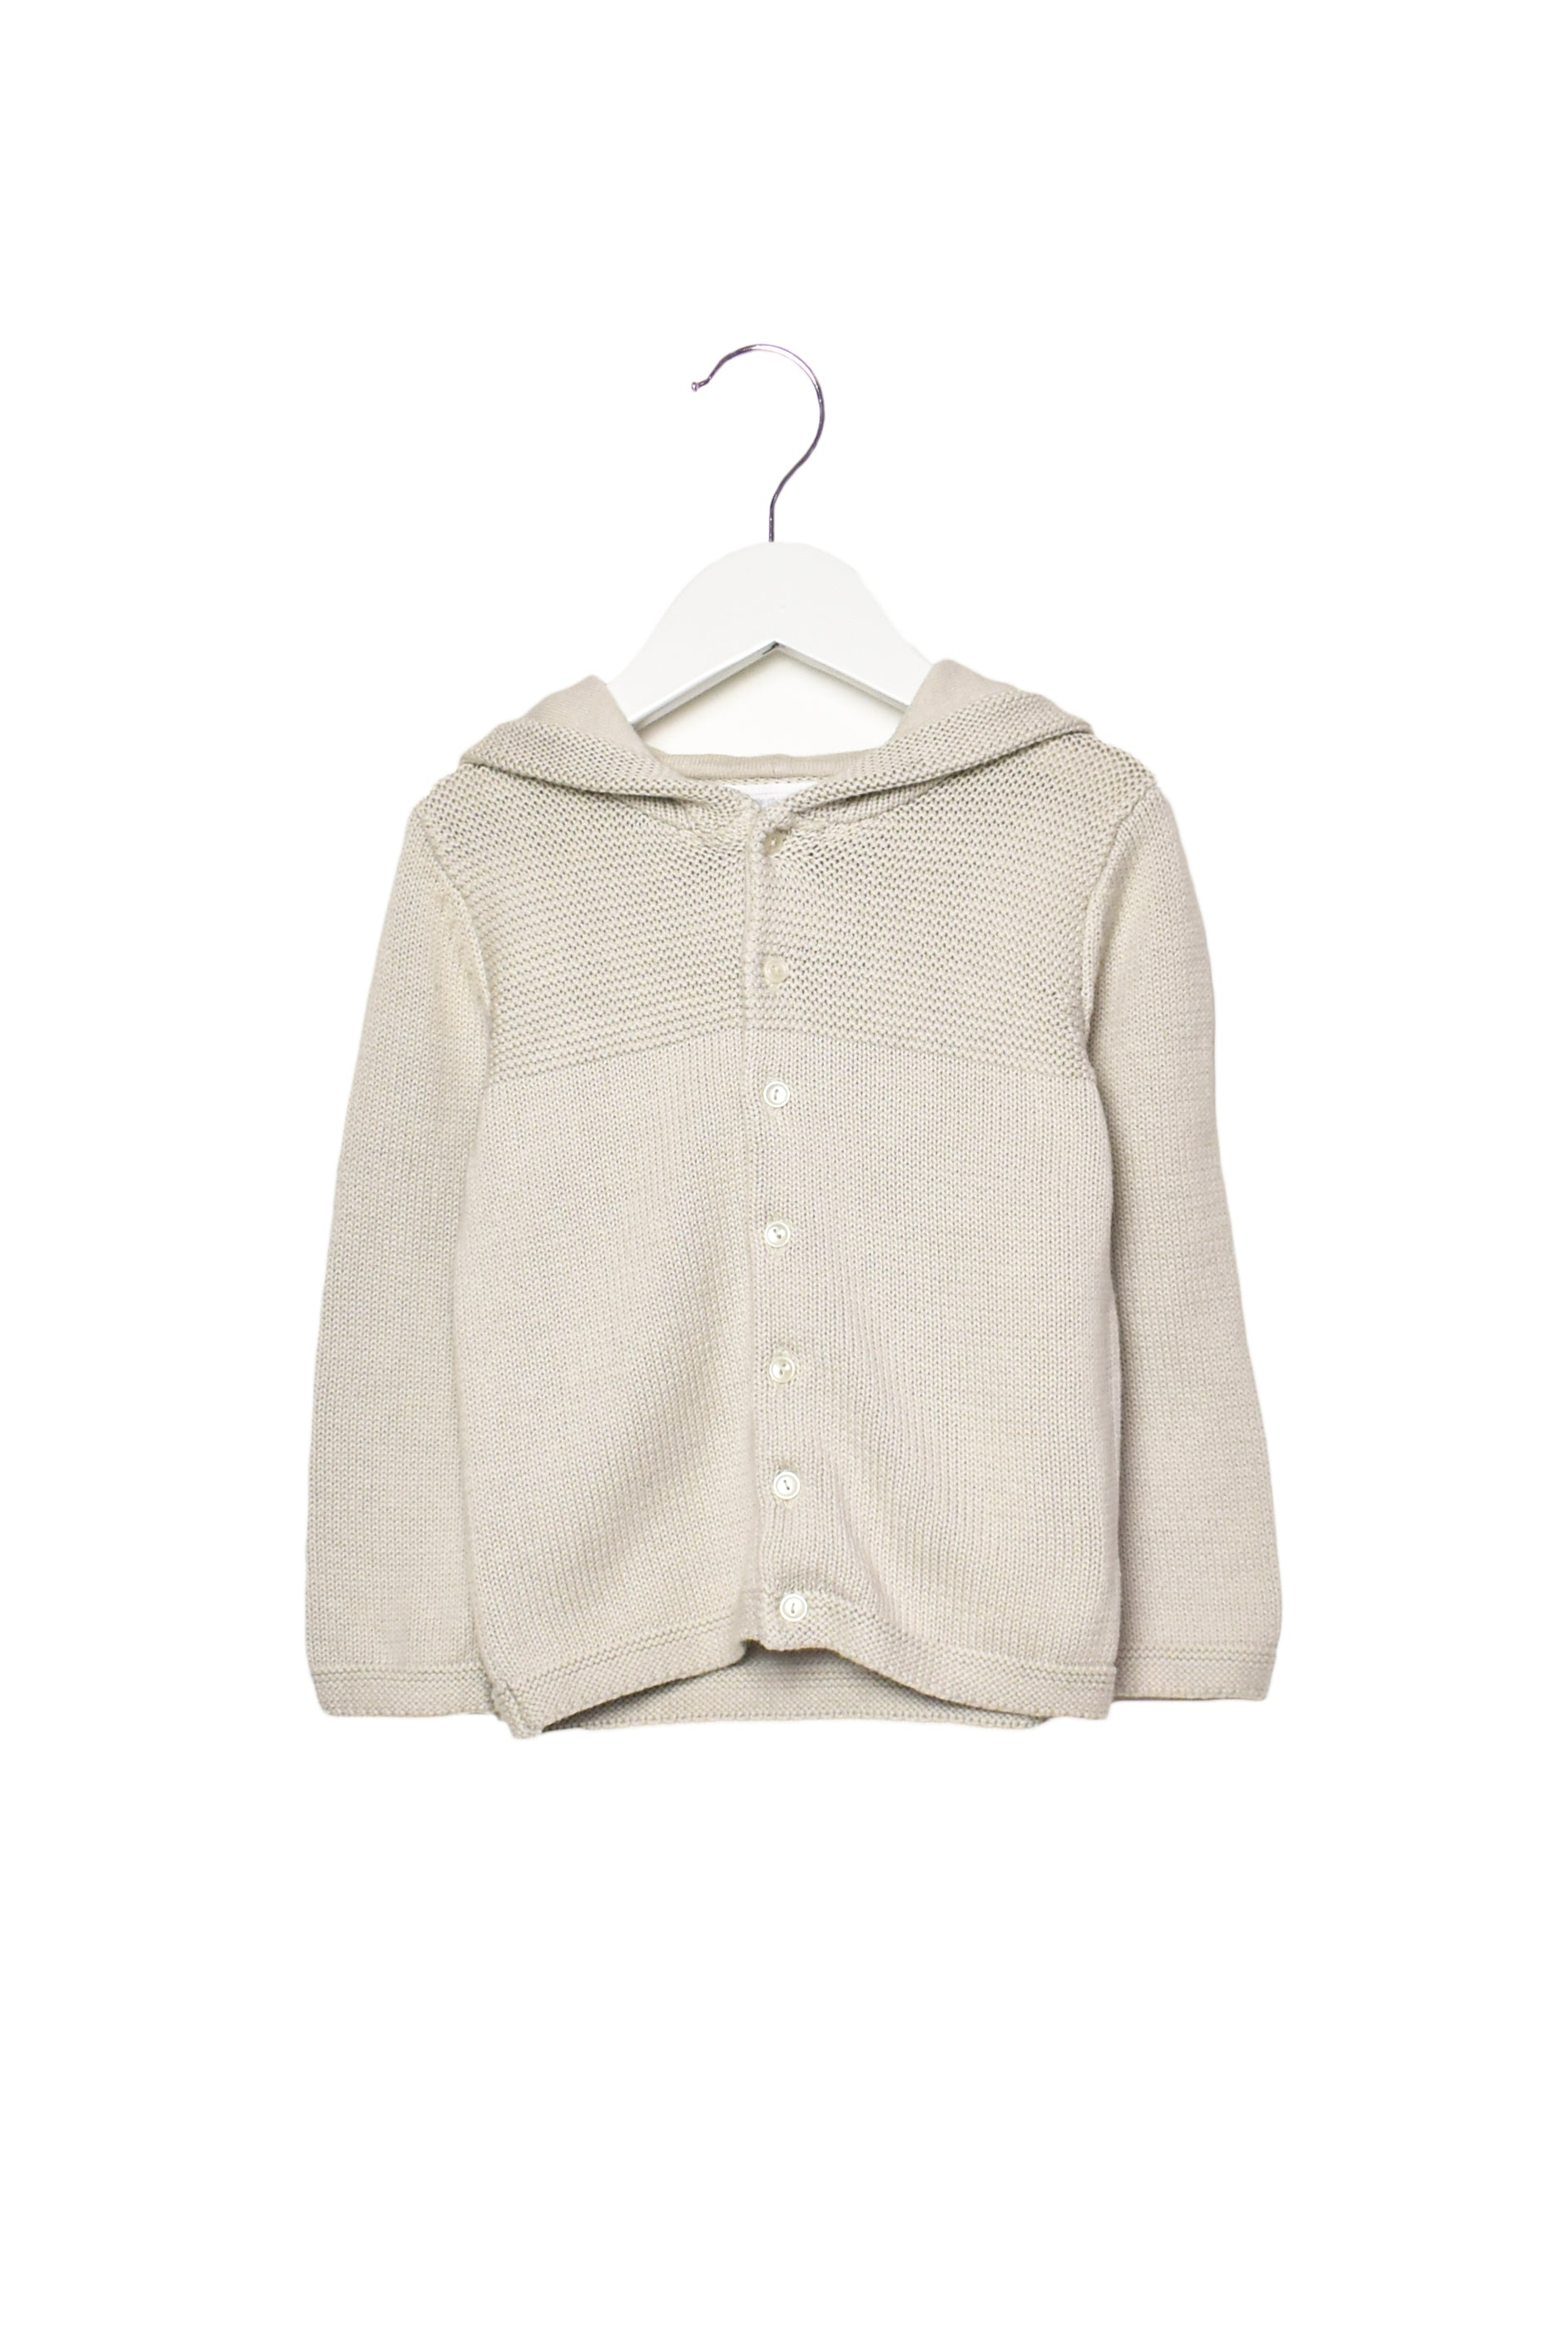 10012186 The Little White Company Baby ~ Cardigan 18-24M at Retykle